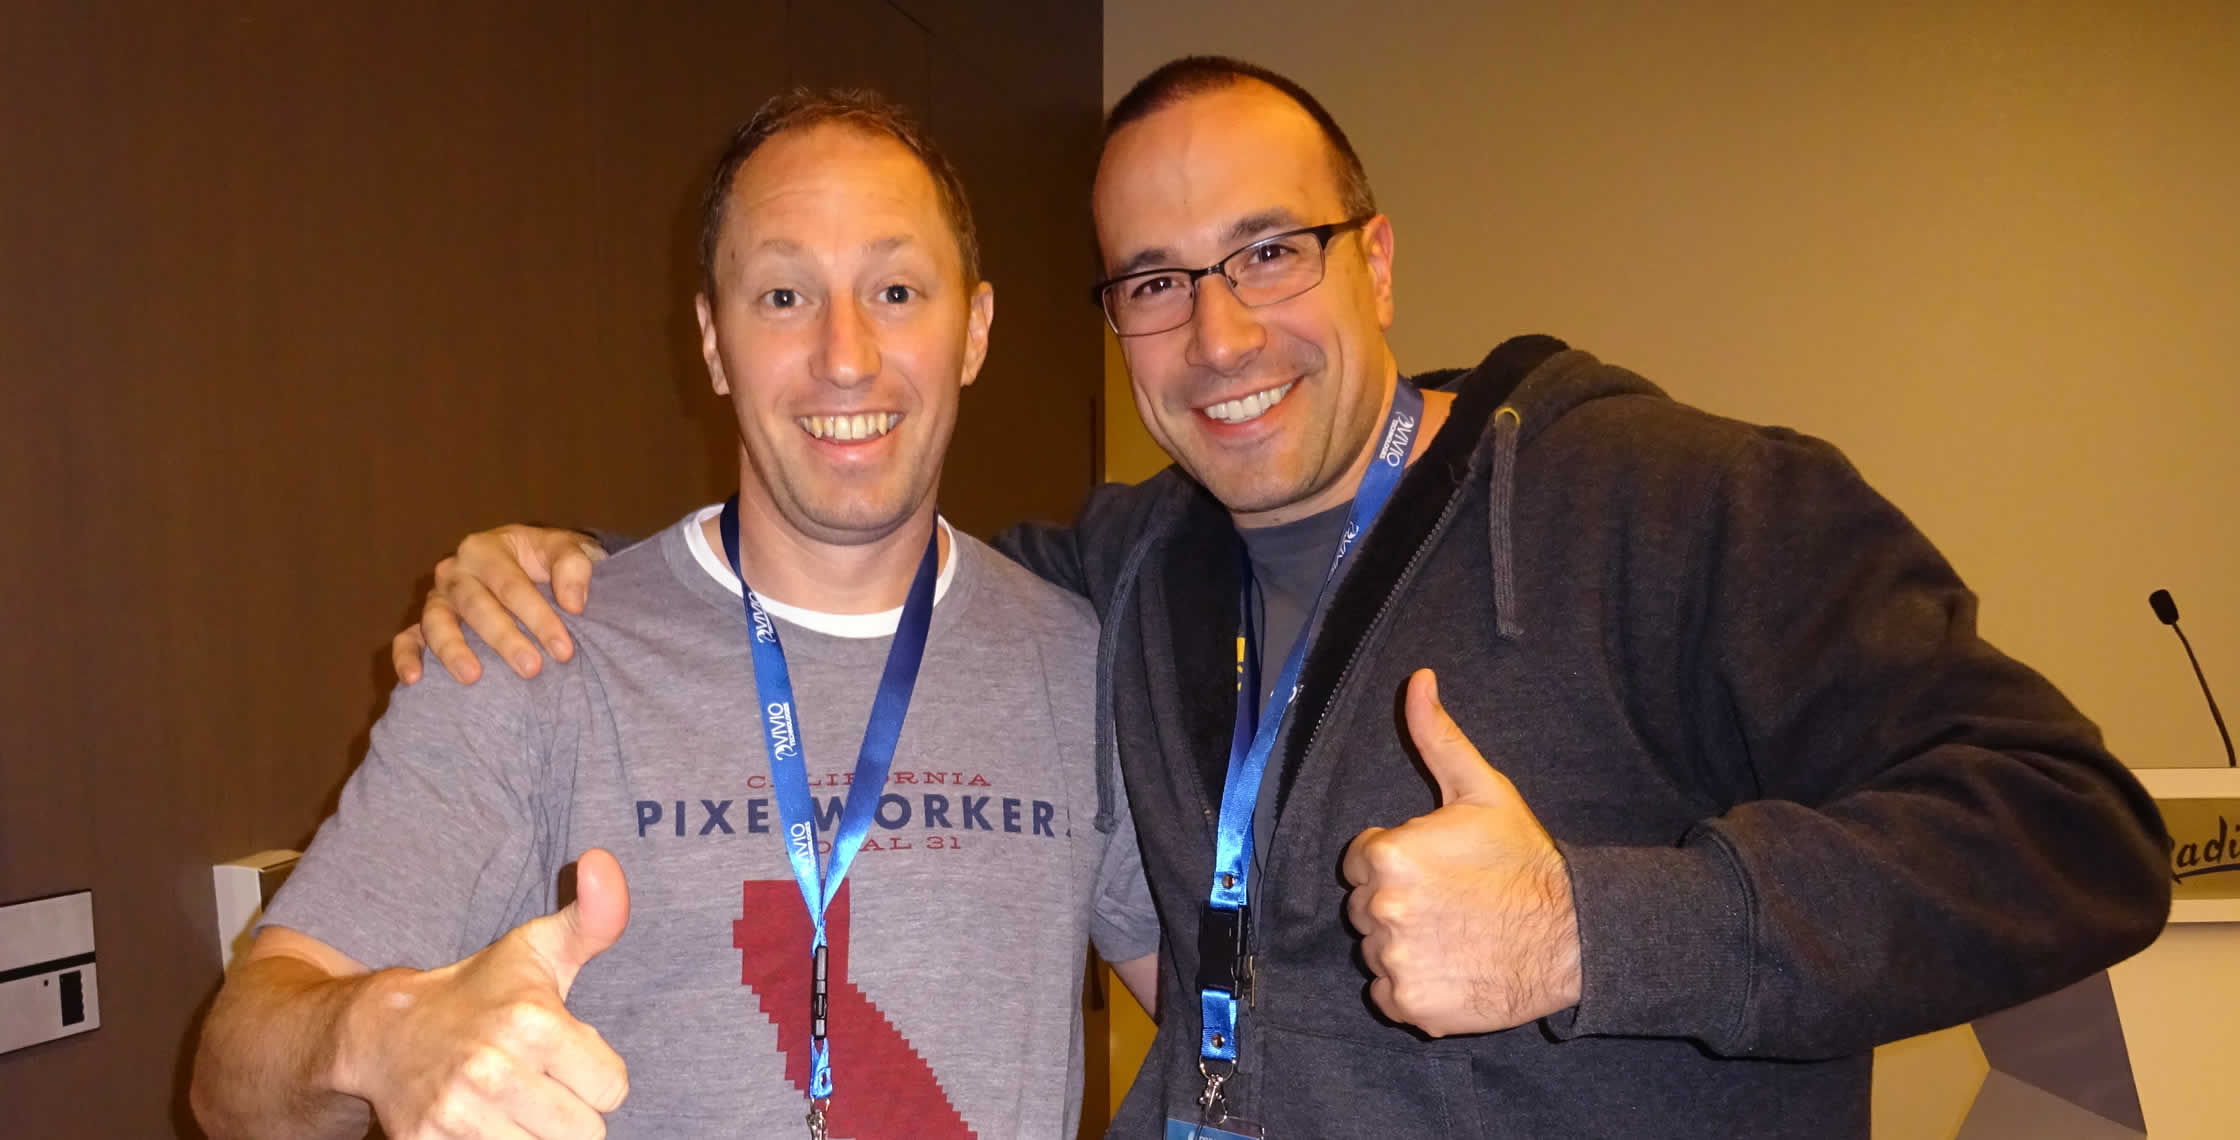 Ben Nadel at dev.Objective() 2015 (Bloomington, MN) with: Ryan Anklam